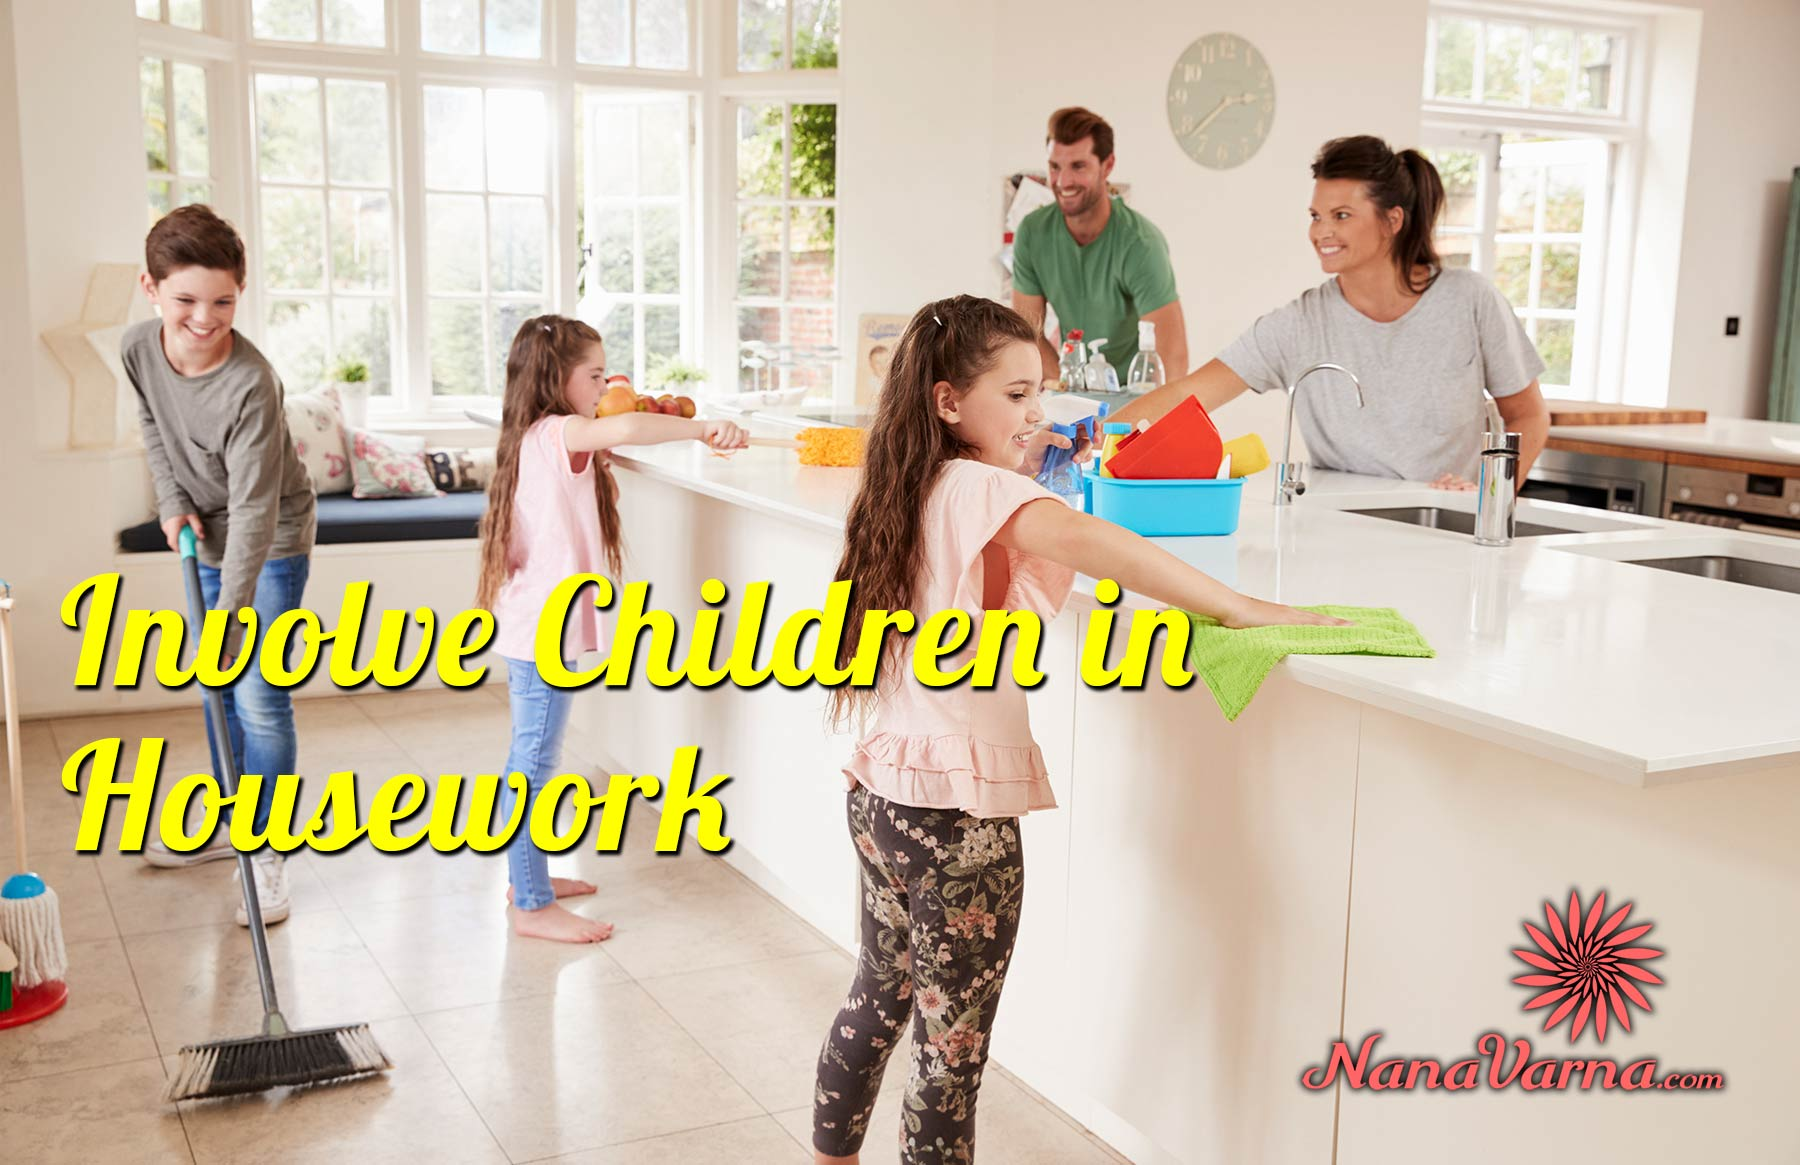 Involve Children in Housework